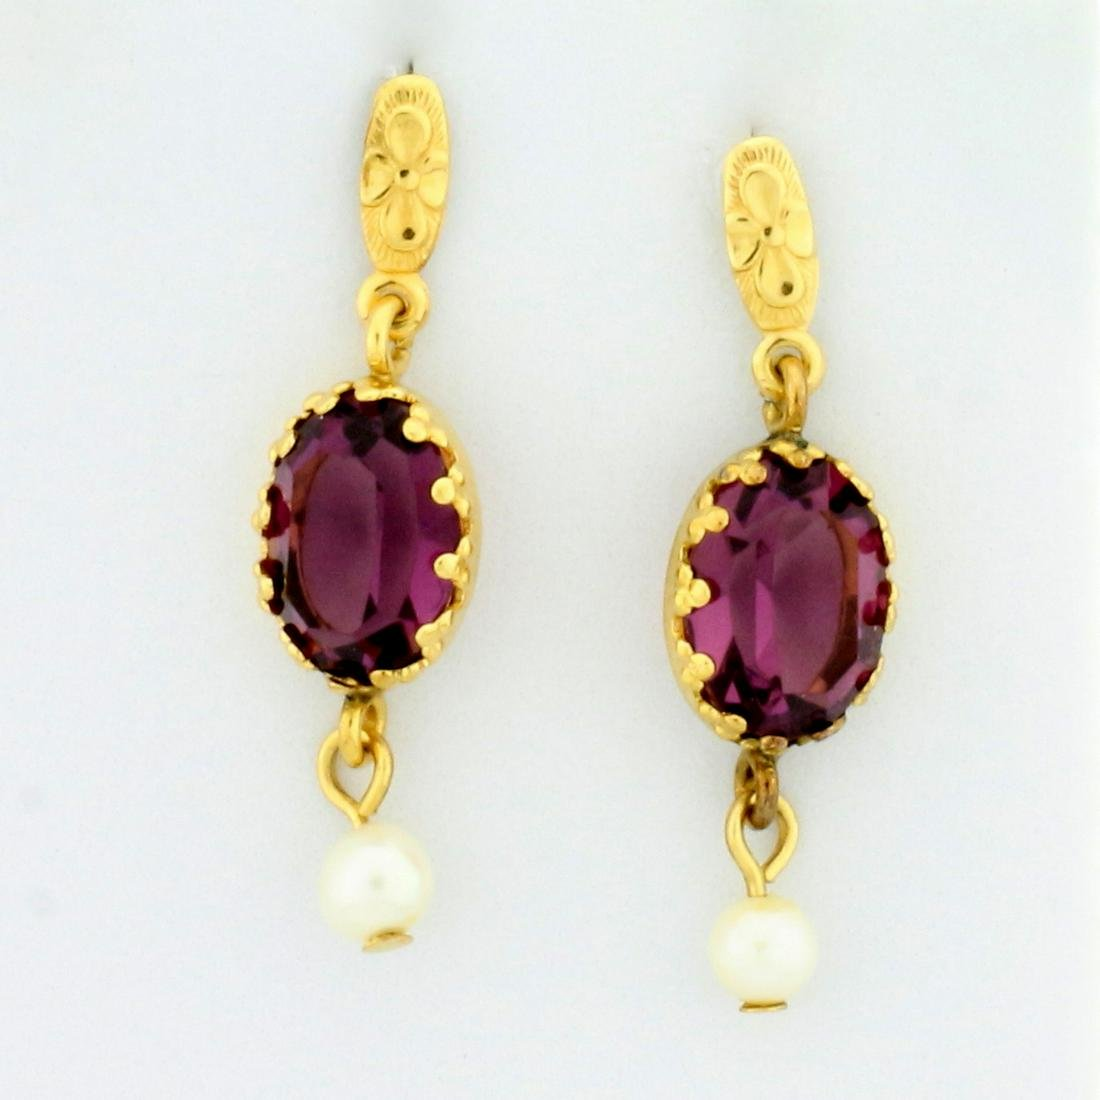 4ct TW Amethyst and Pearl Dangle Earrings in 14K Yellow